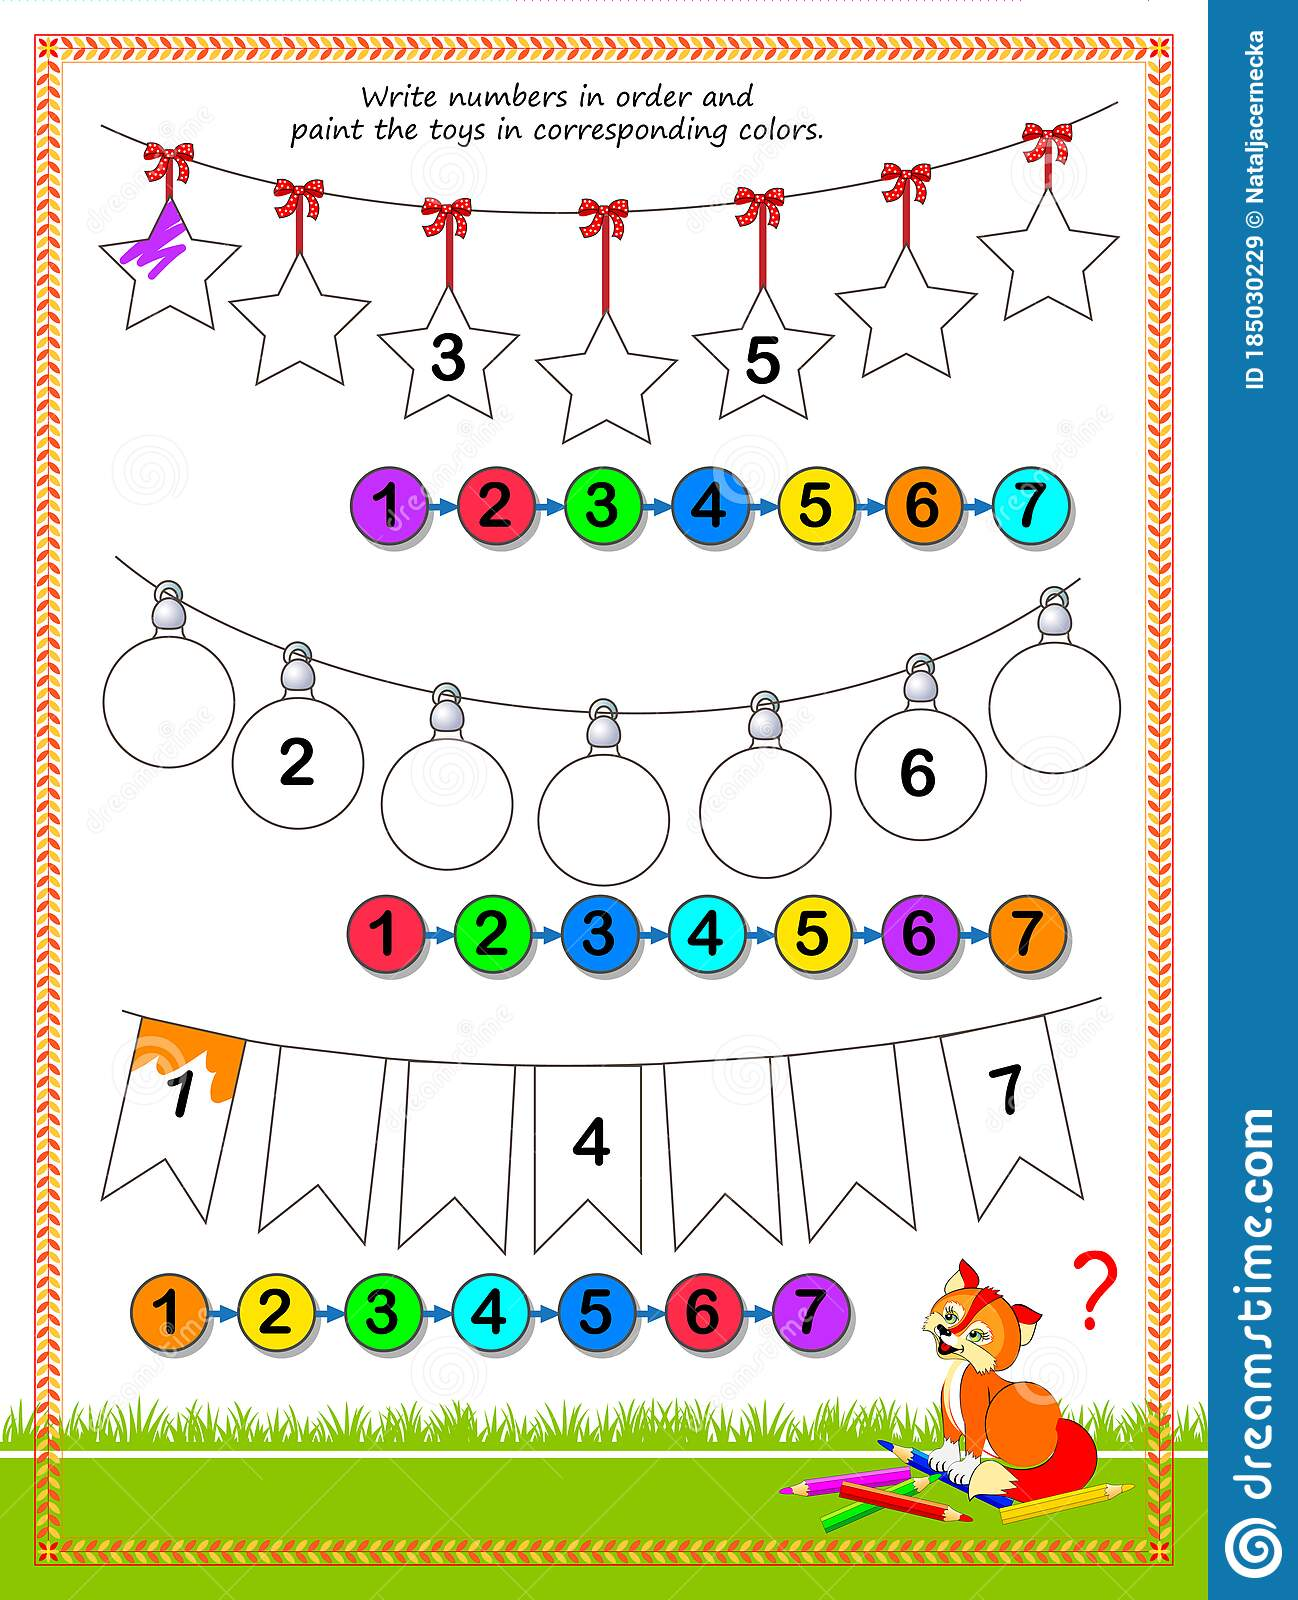 Math Education For Children Write Numbers In Order And